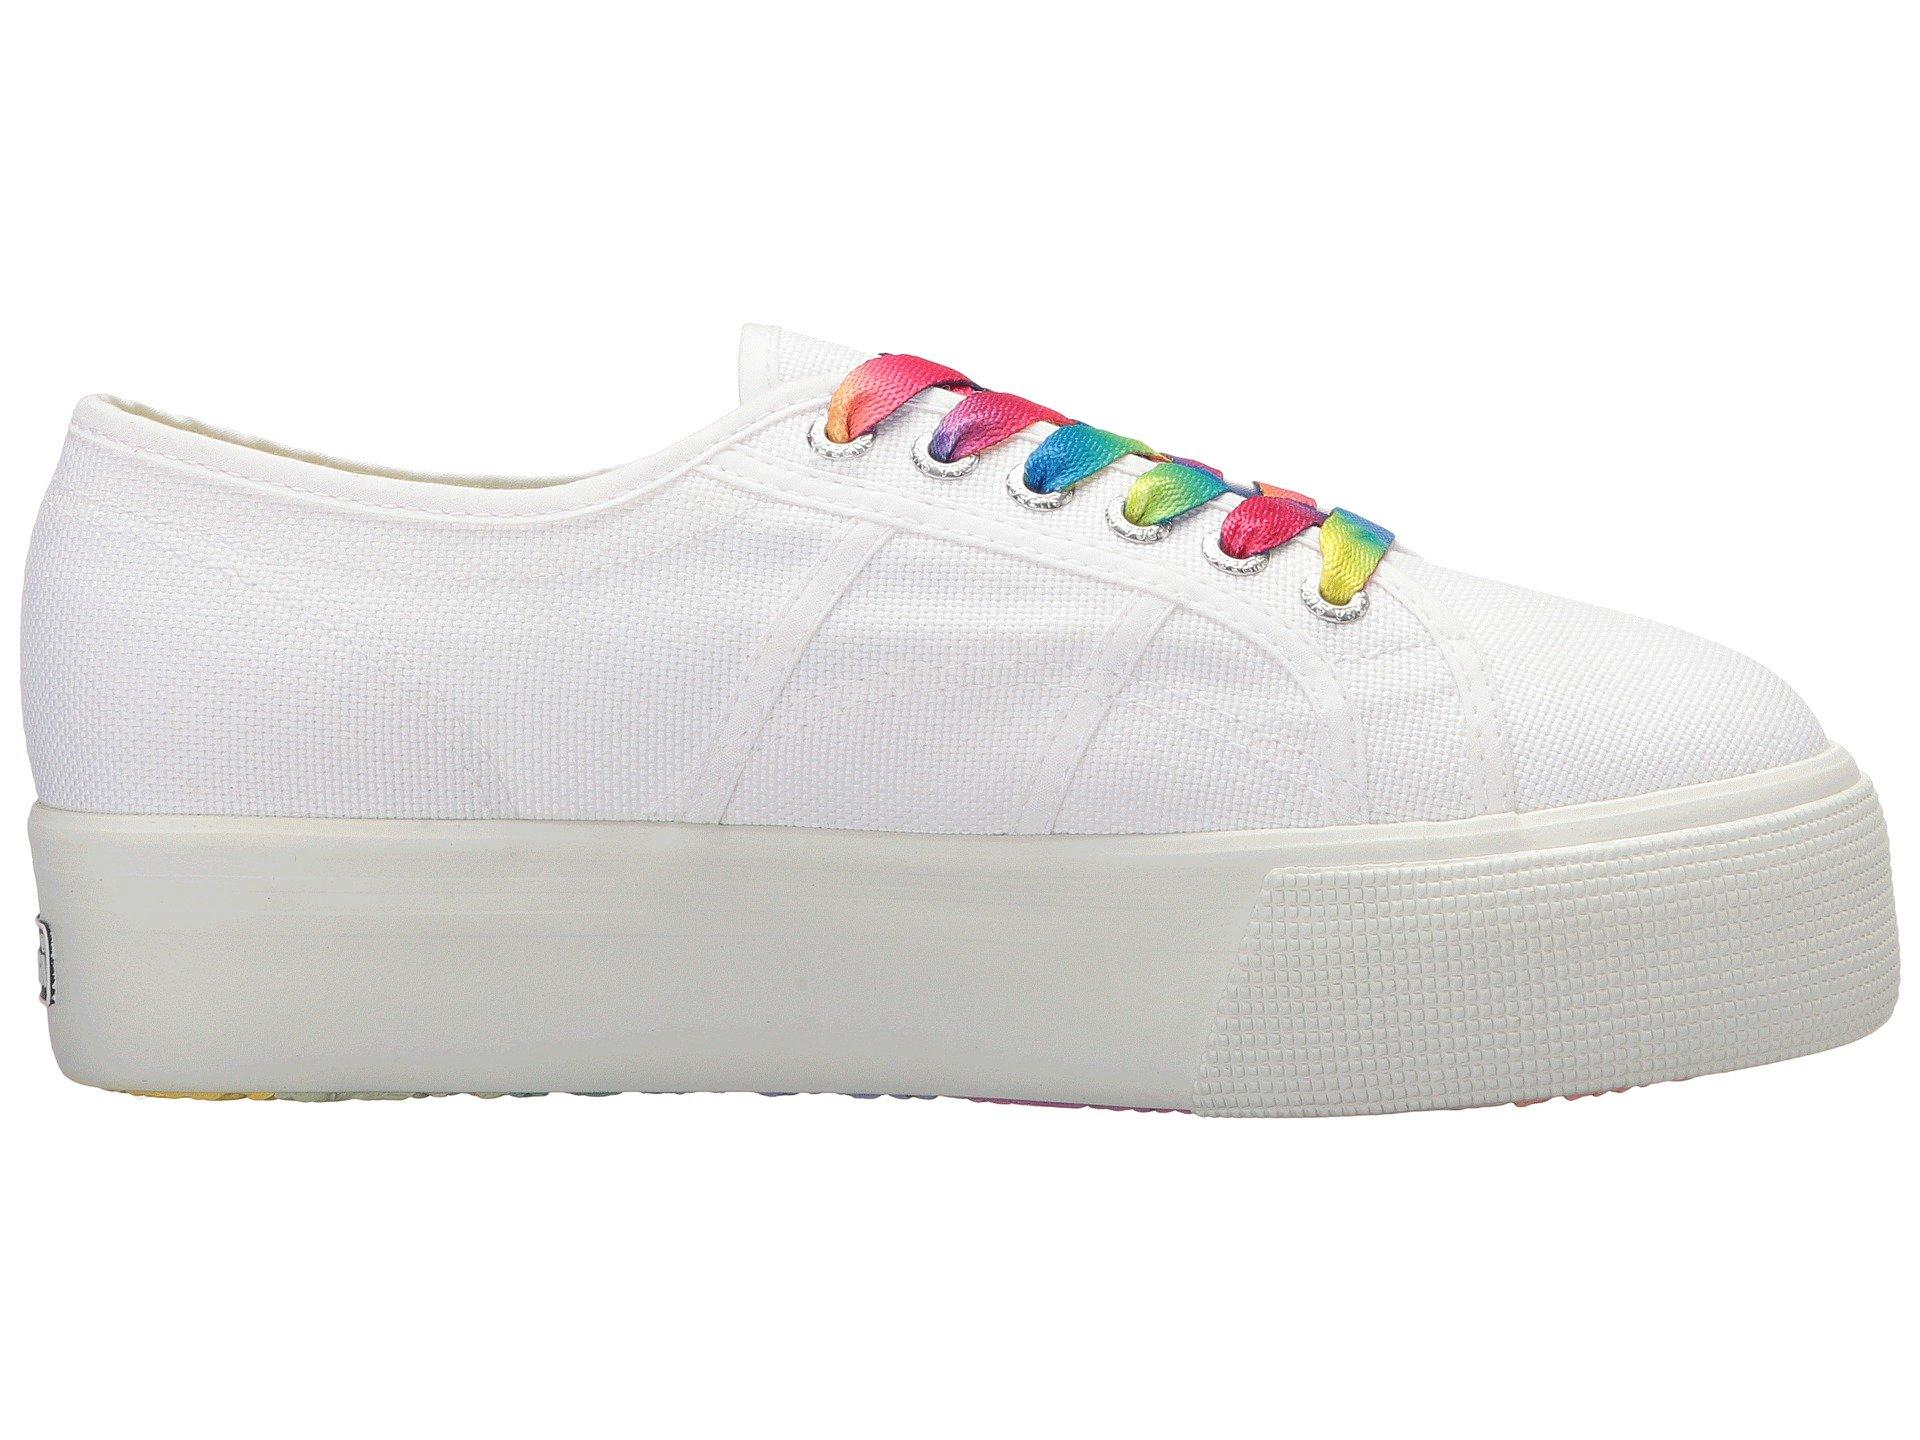 9aa7a85d99a Lyst - Superga 2790 Cotw Multicolor Outsole Platform Sneaker in White -  Save 26%